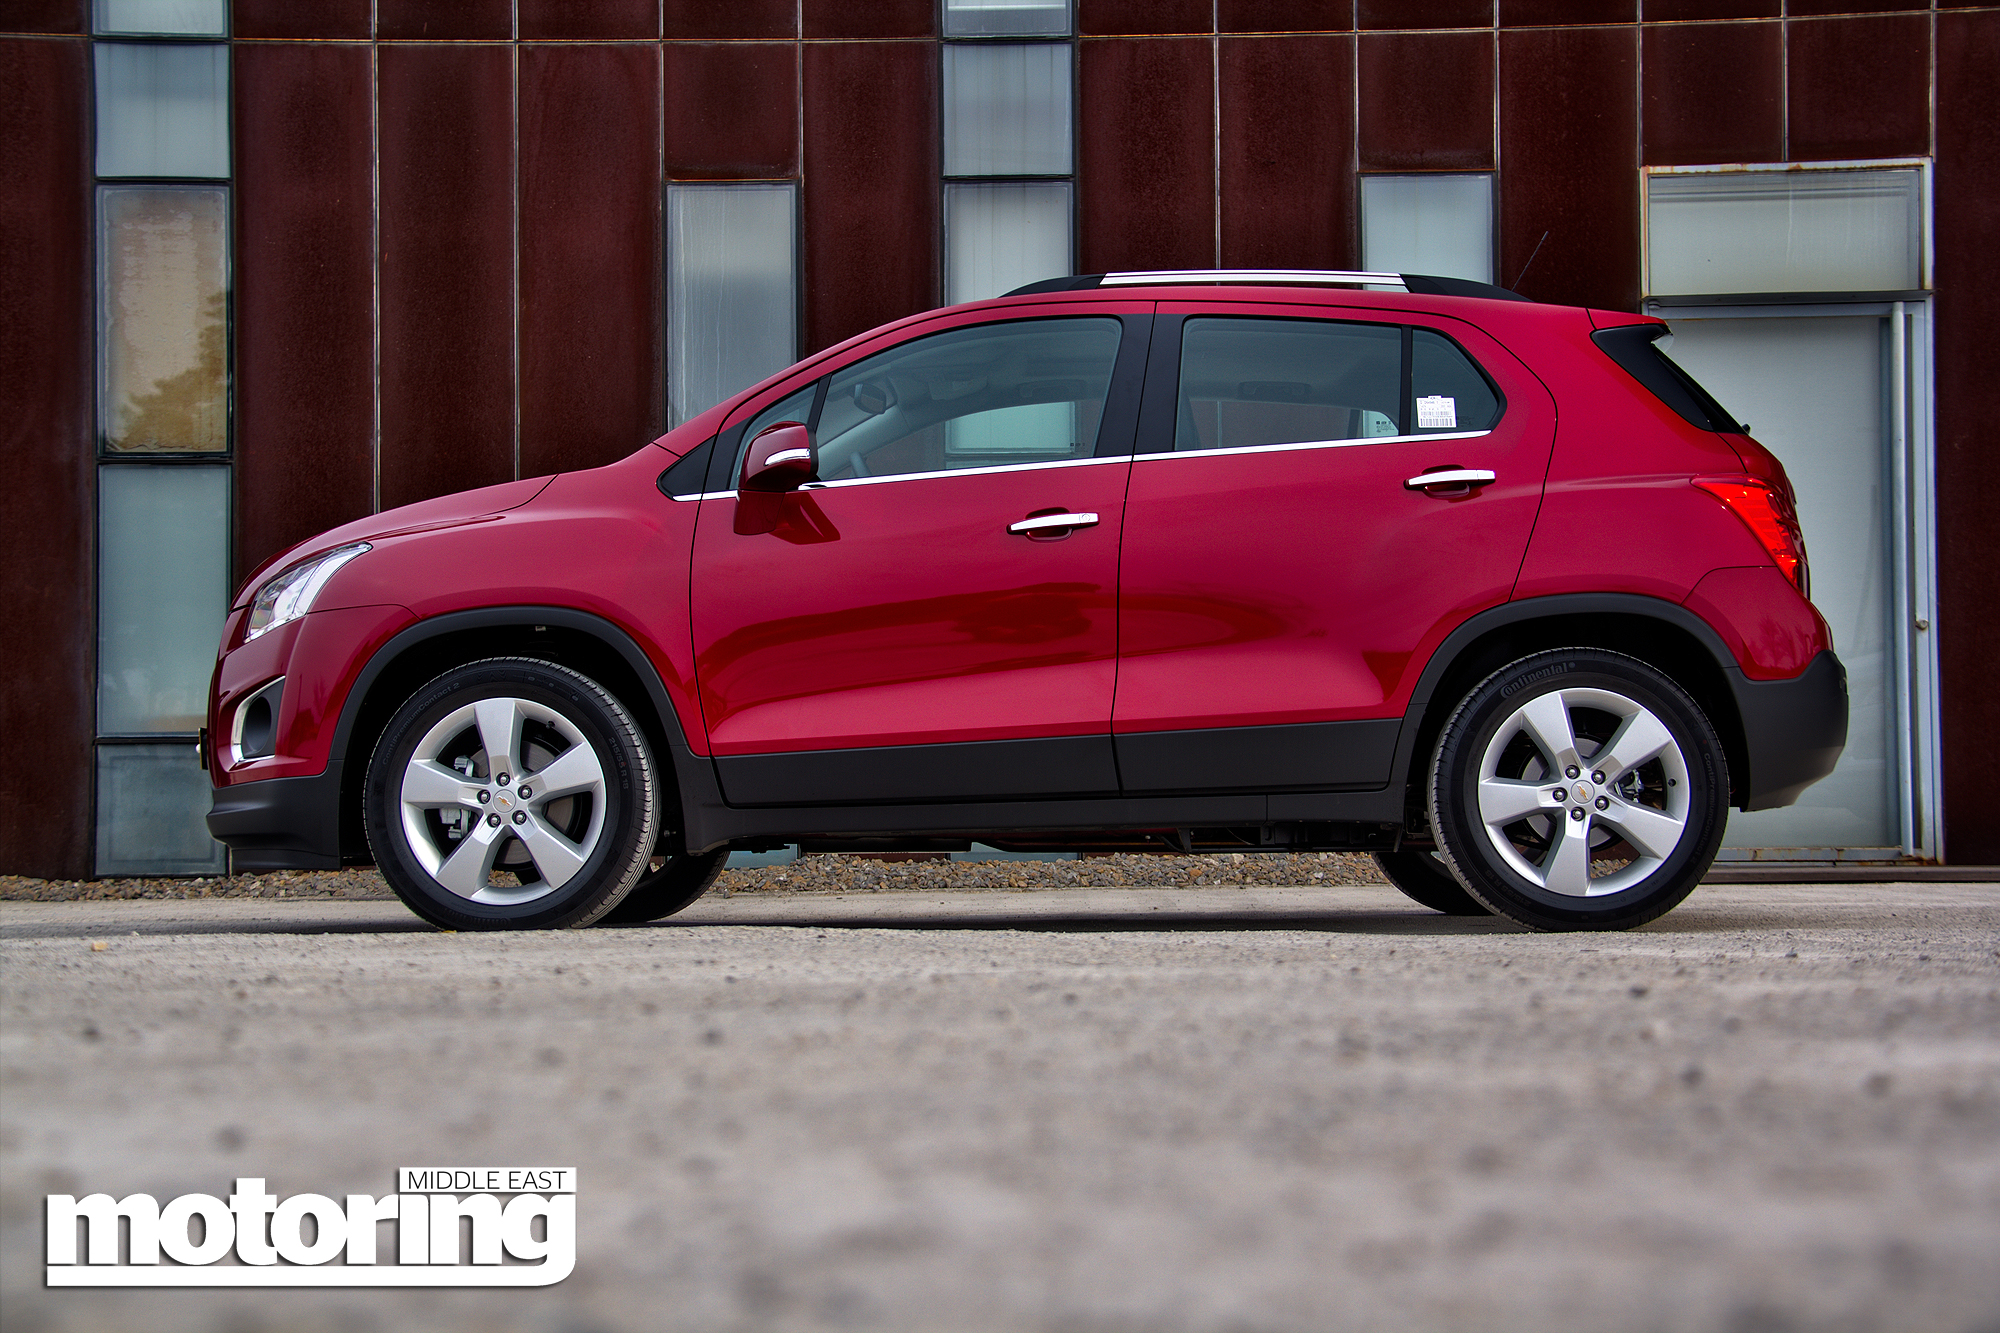 2014 chevrolet trax 1 8 reviewmotoring middle east car news reviews and buying guides. Black Bedroom Furniture Sets. Home Design Ideas